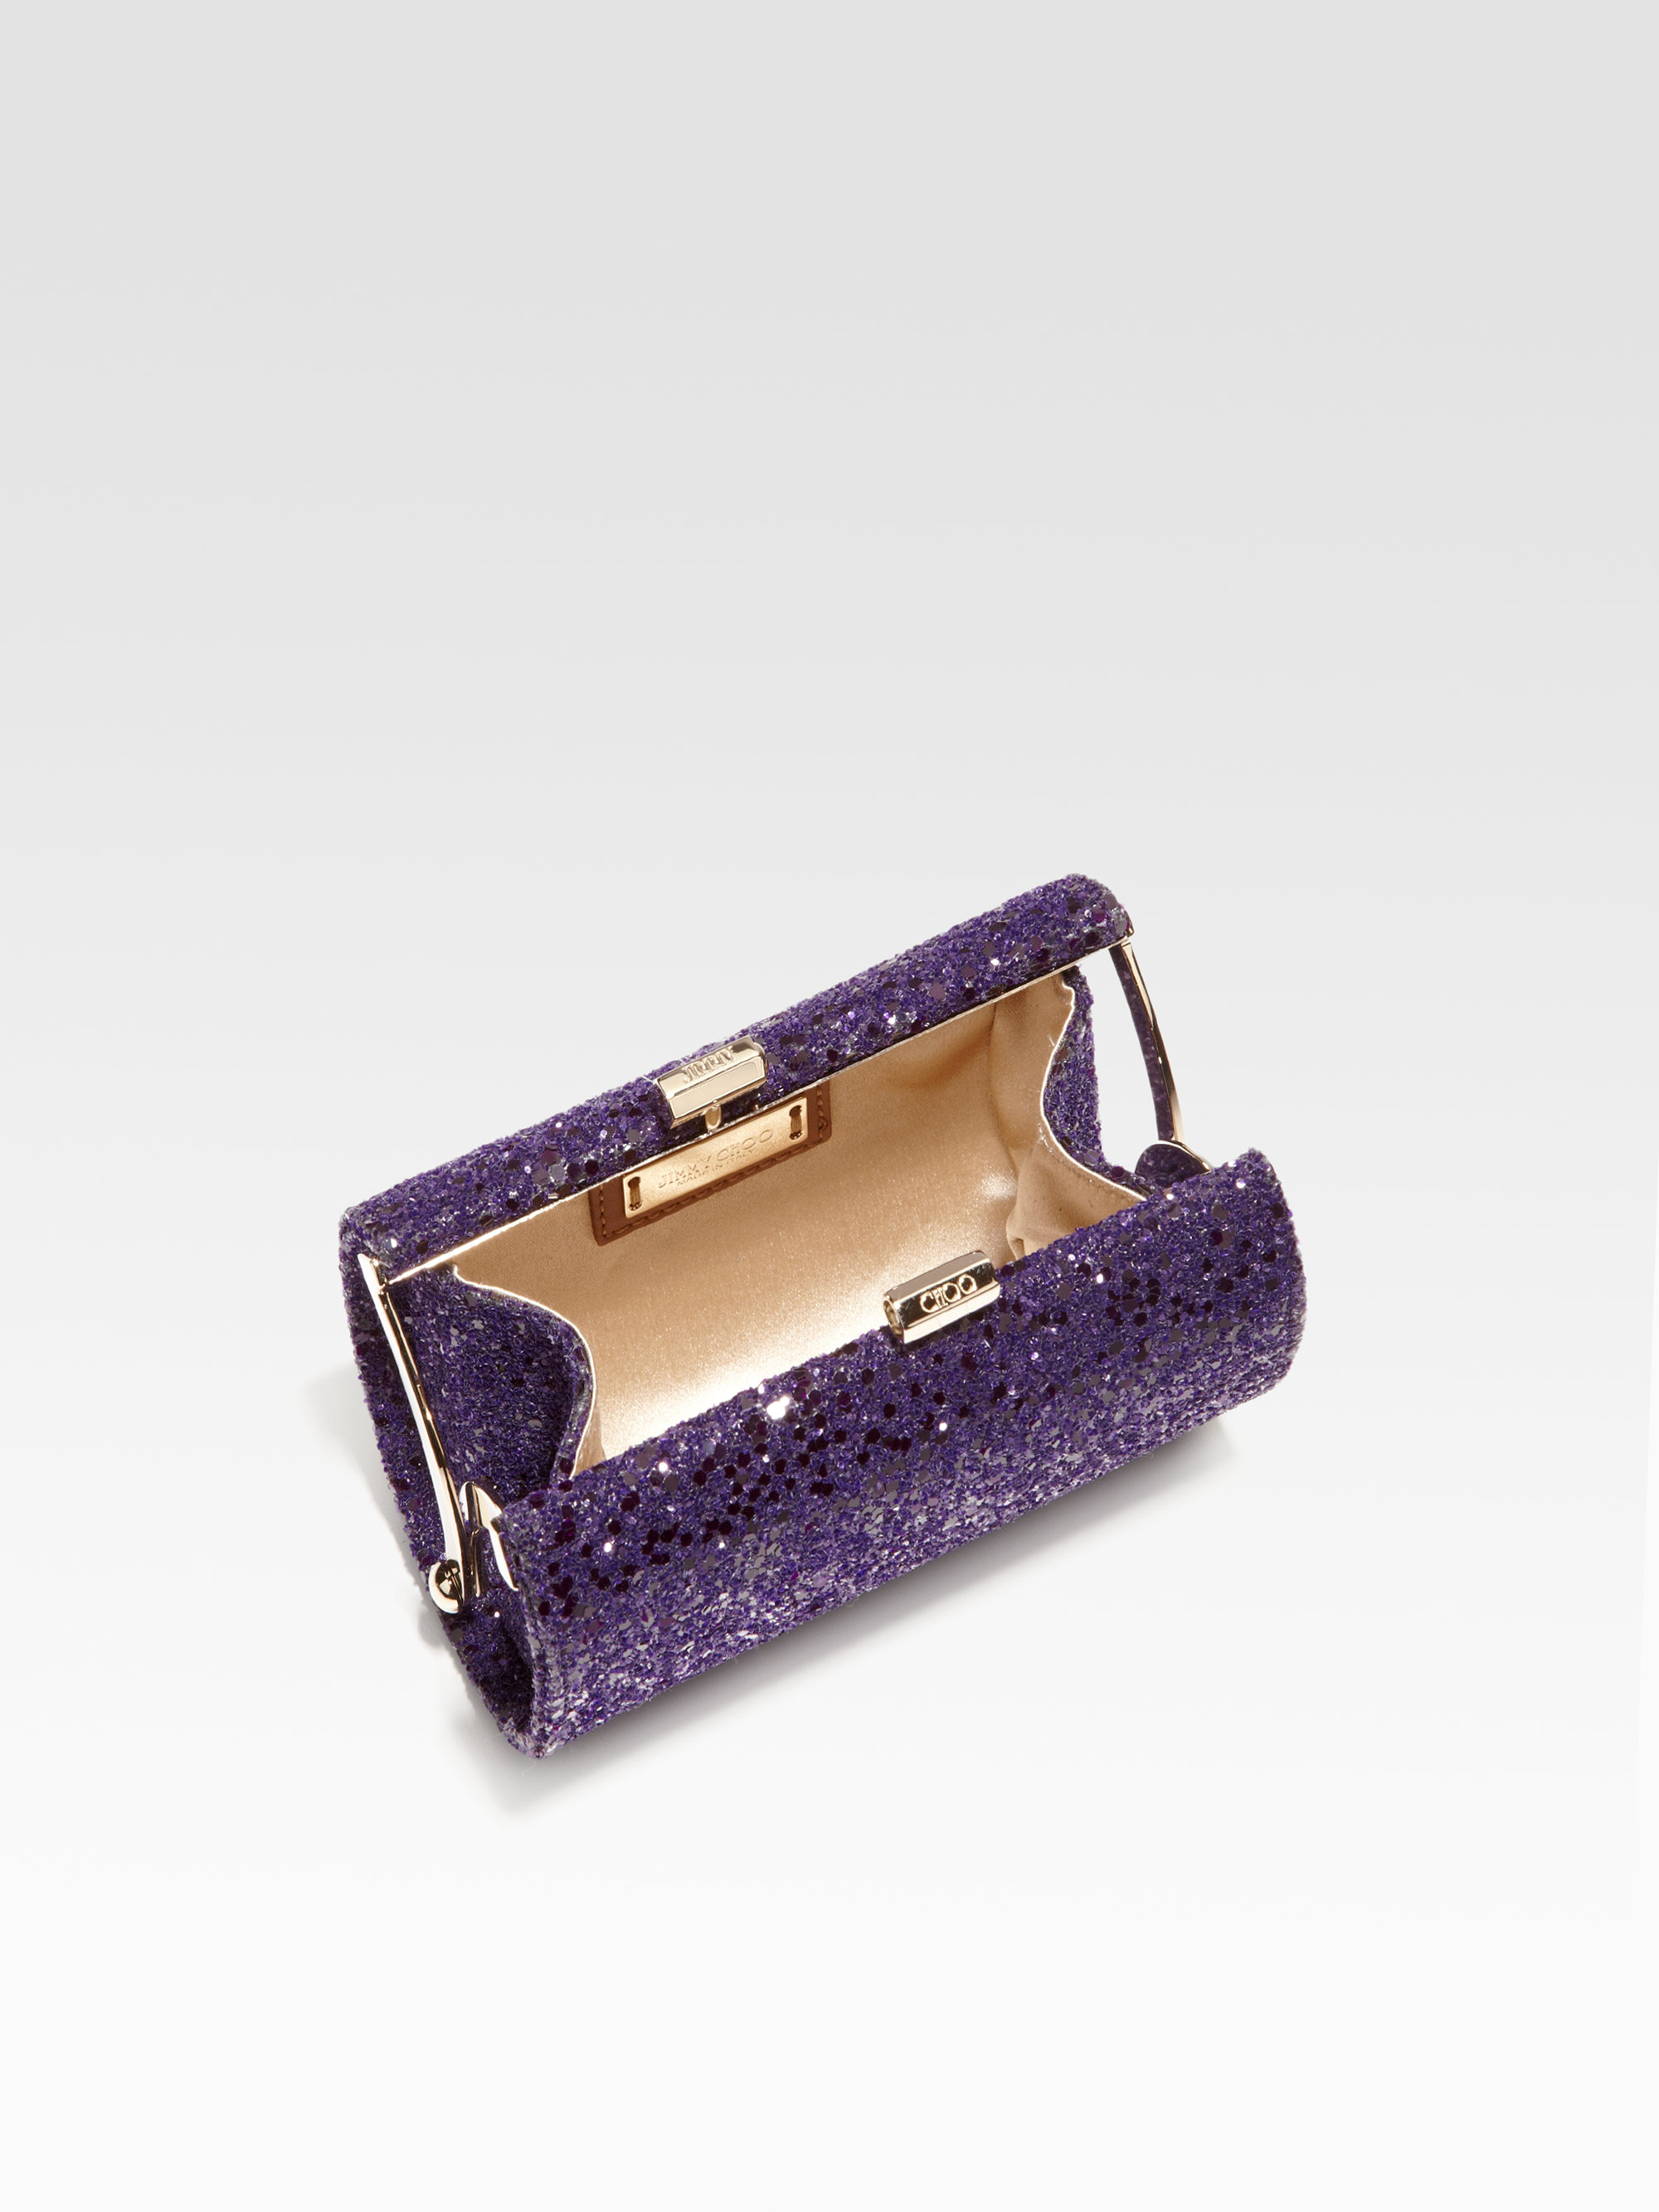 adaa807512 Gallery. Previously sold at: Saks Fifth Avenue · Women's Jimmy Choo Glitter